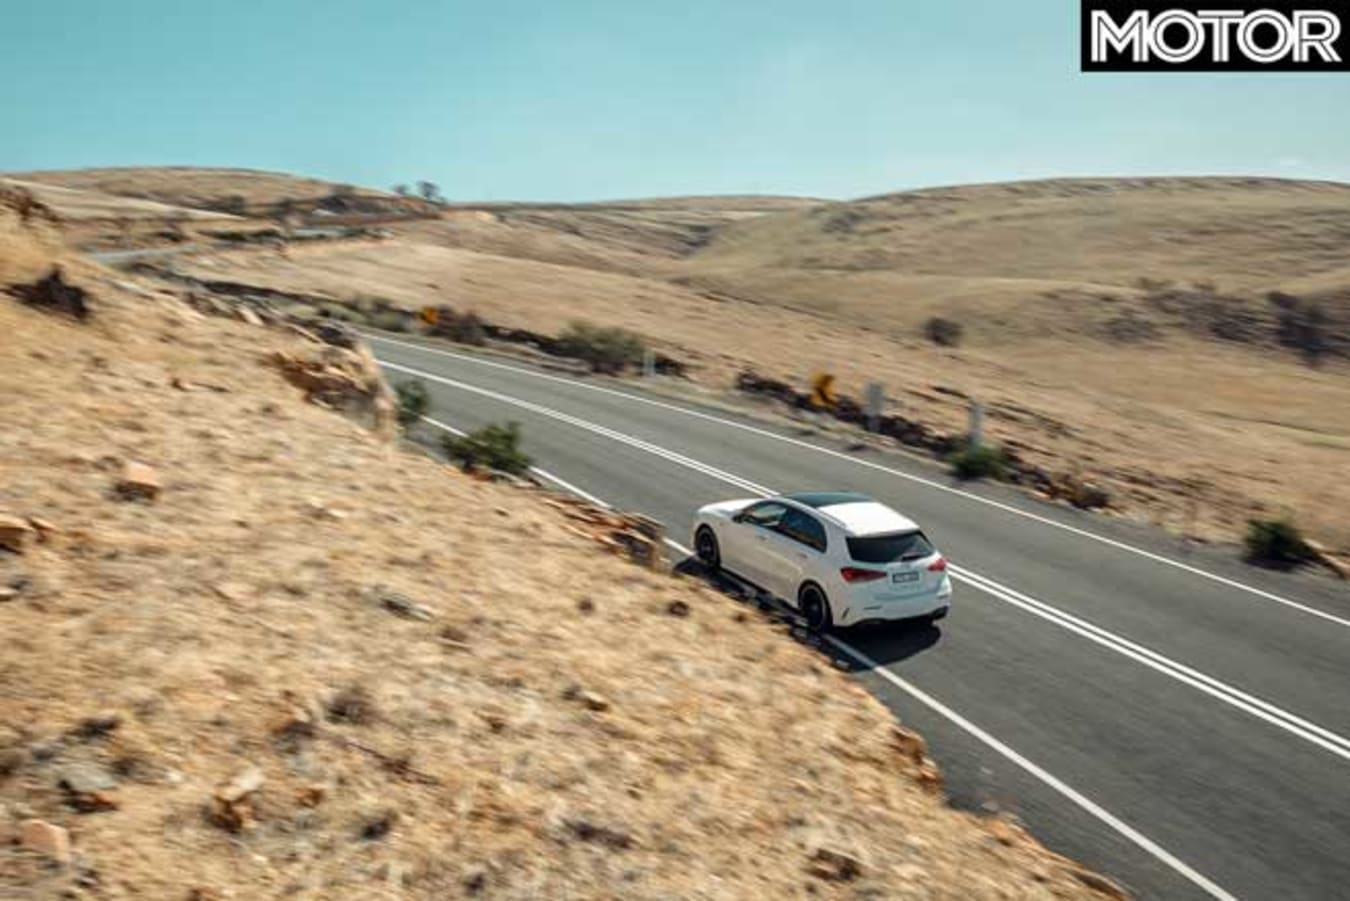 Performance Car Of The Year 2020 Road Course Mercedes AMG A 35 Review Jpg